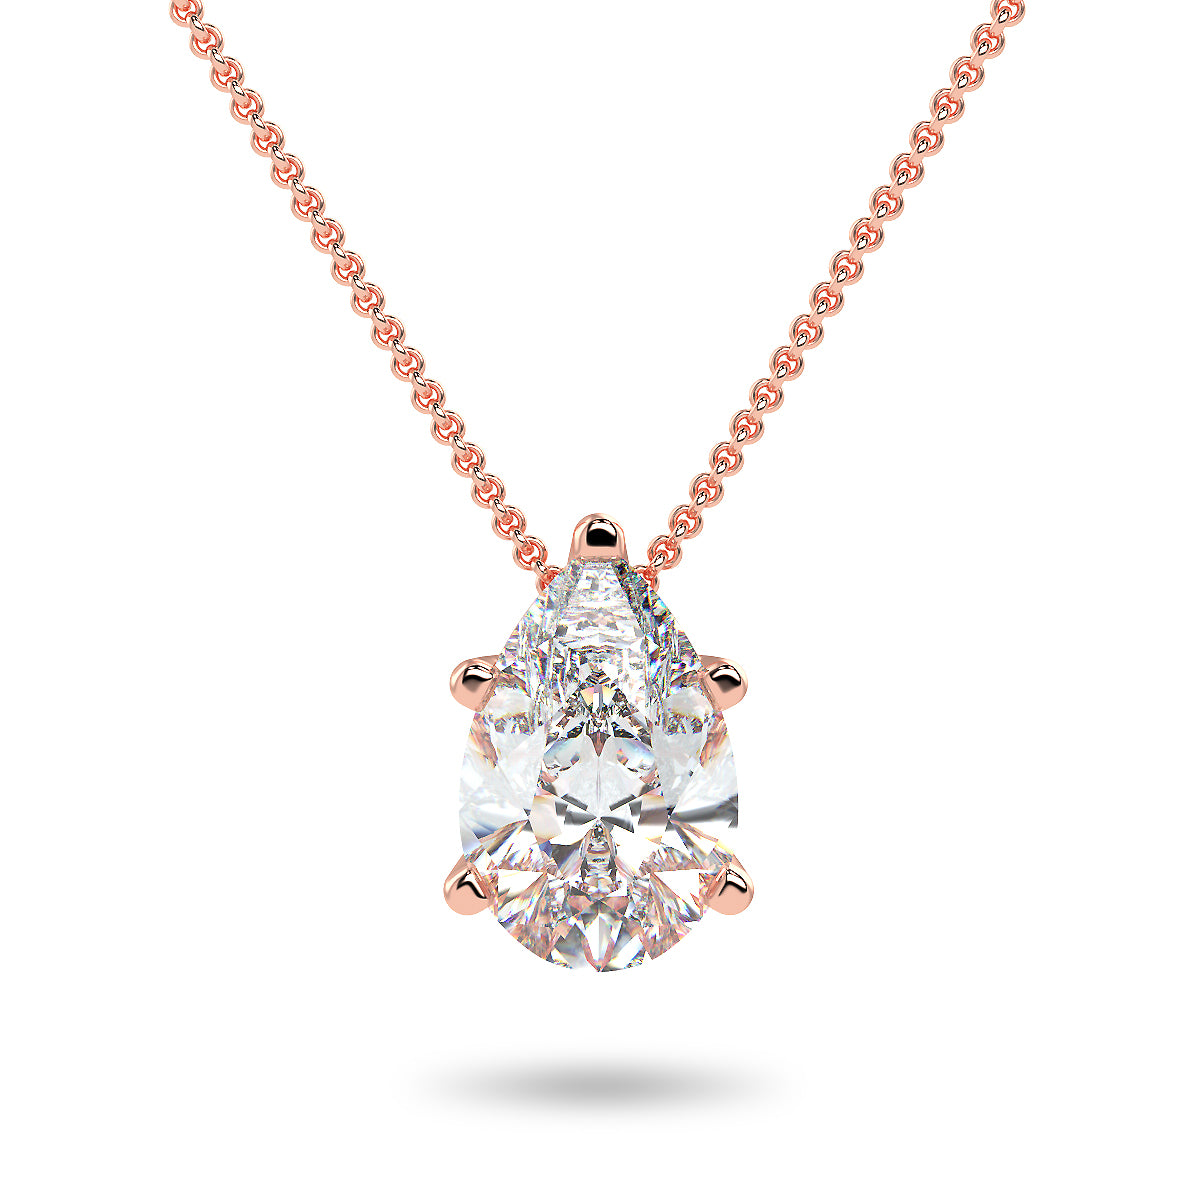 Sirius Pear Necklace - Rose Gold (0.33 - 2.00 Ct. Tw.)